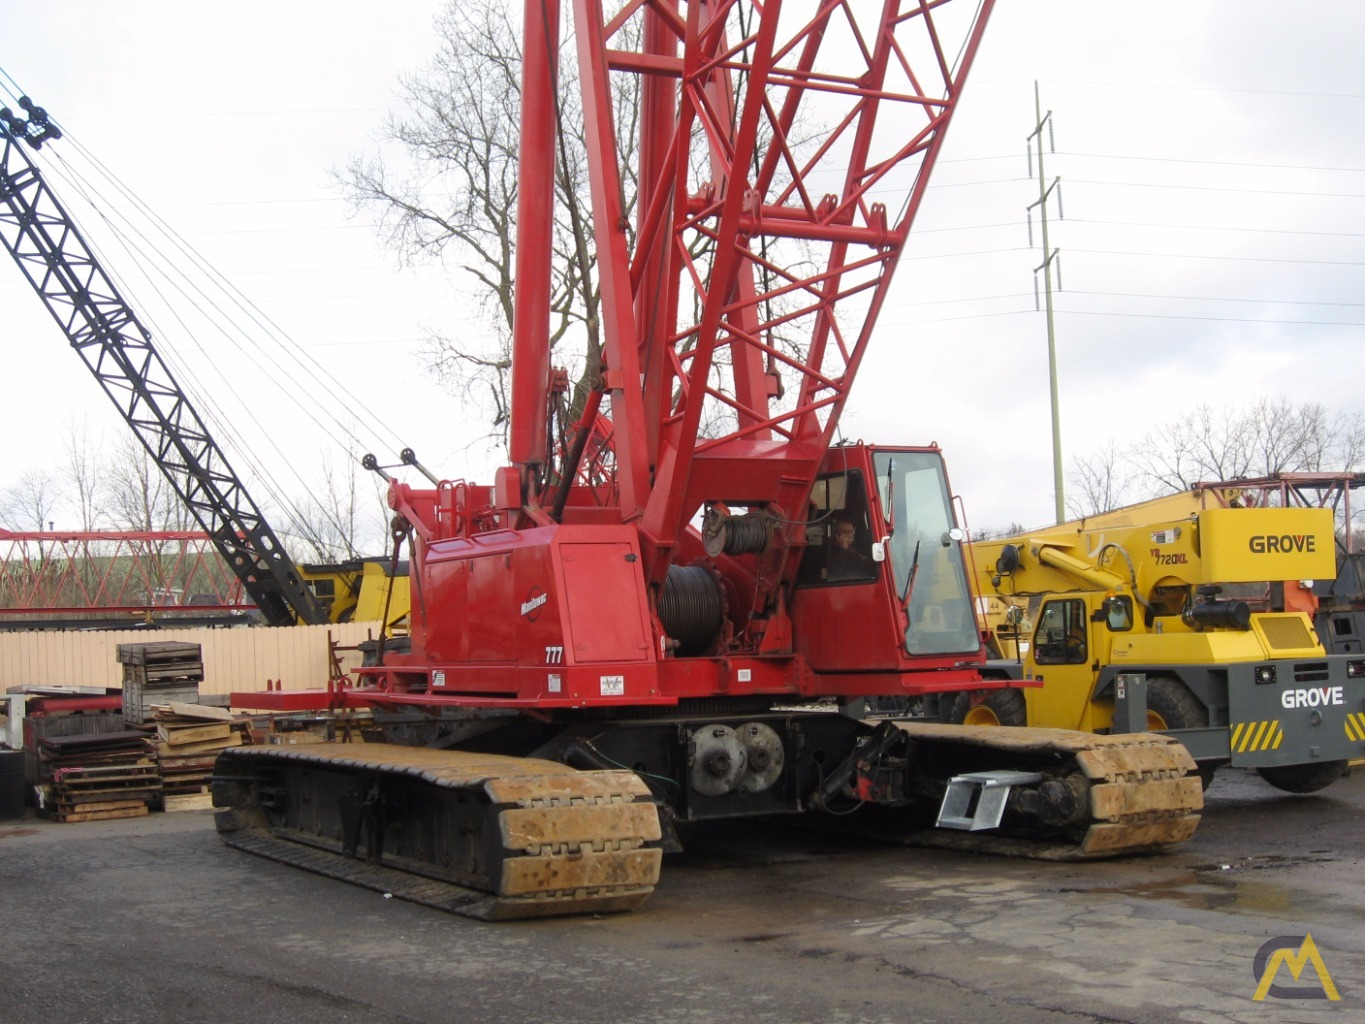 200t Manitowoc 777 SII Lattice Boom Crawler Crane 0